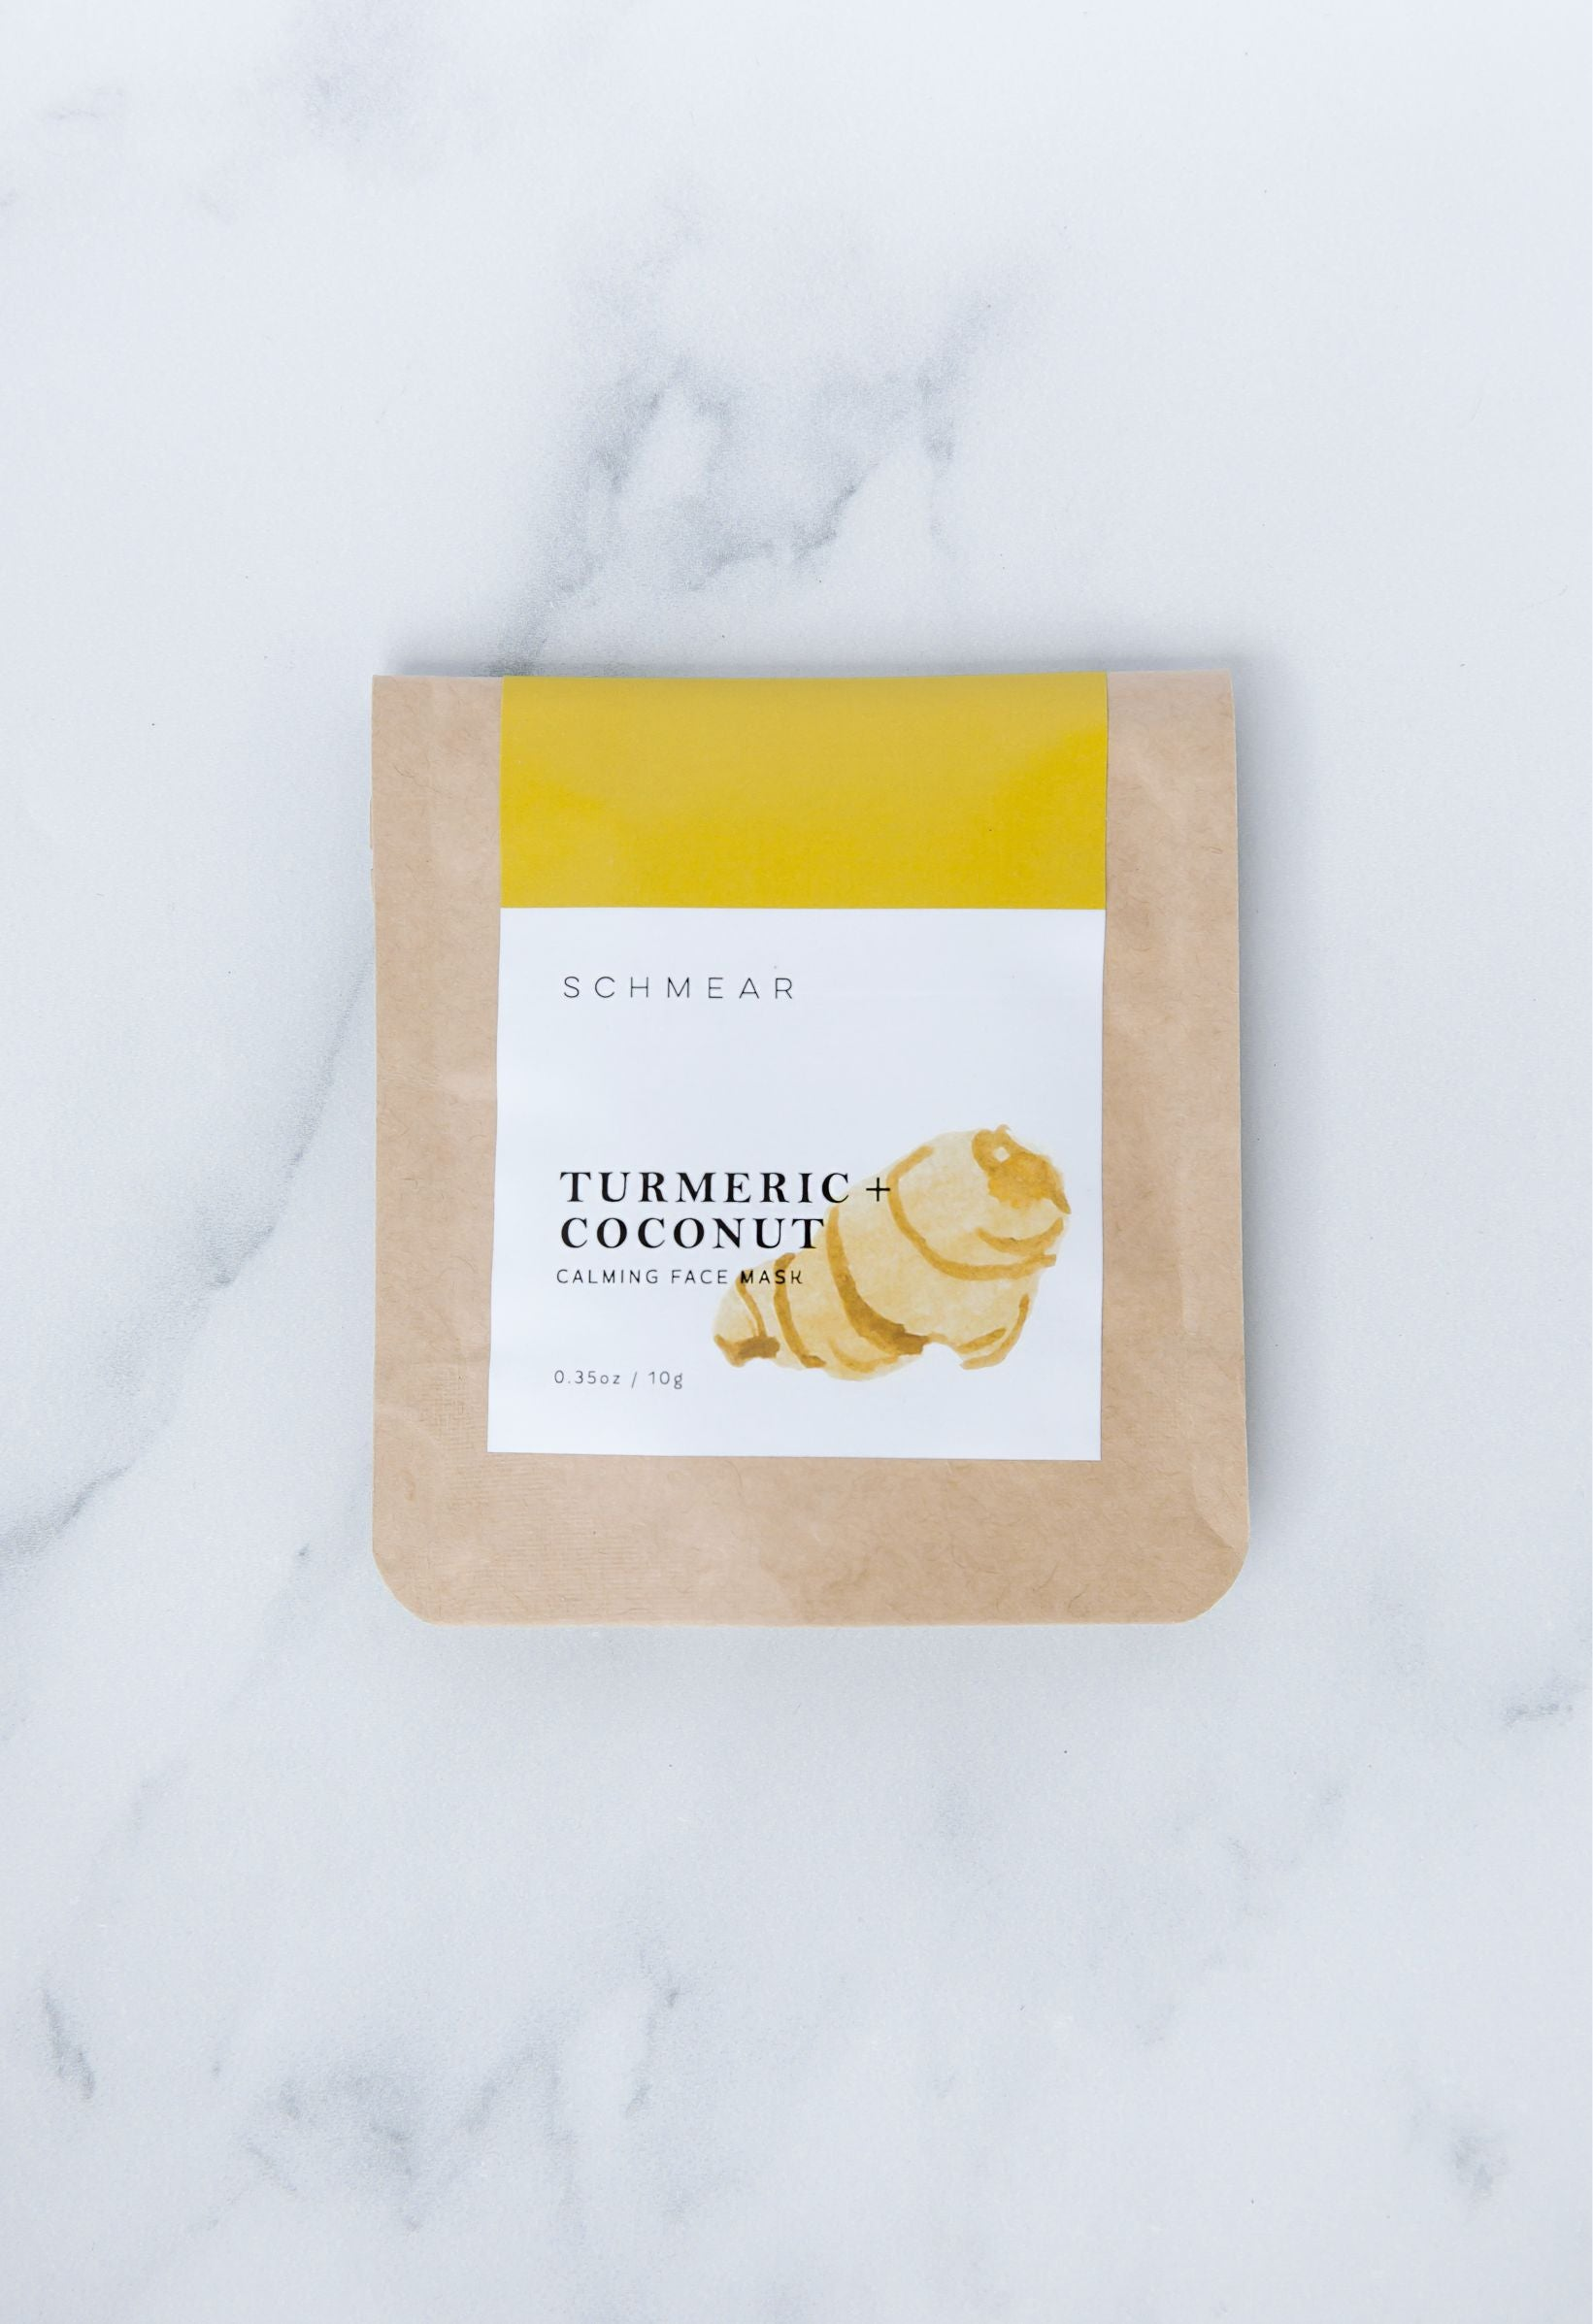 fall jiyubox skincare - schmearnaturals turmeric + coconut calming face mask